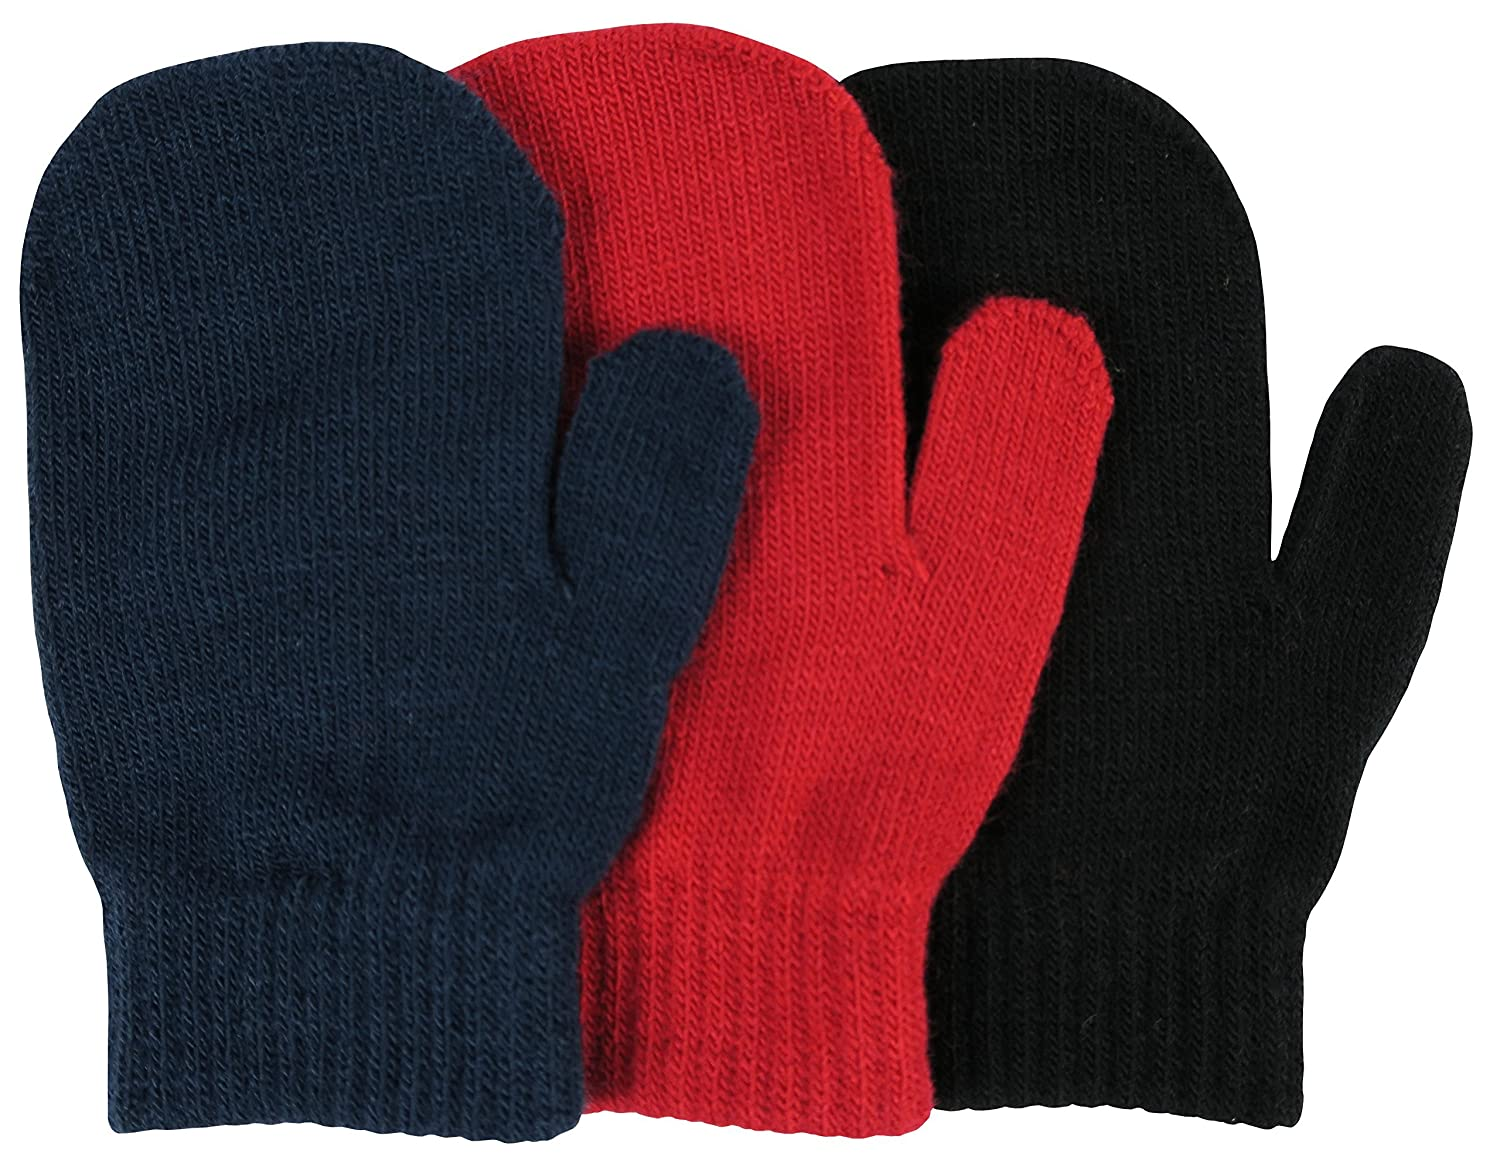 N'Ice Caps Little Boys and Infants Magic Stretch Mittens 3 Pairs Assortment N'Ice Caps 211-C-I